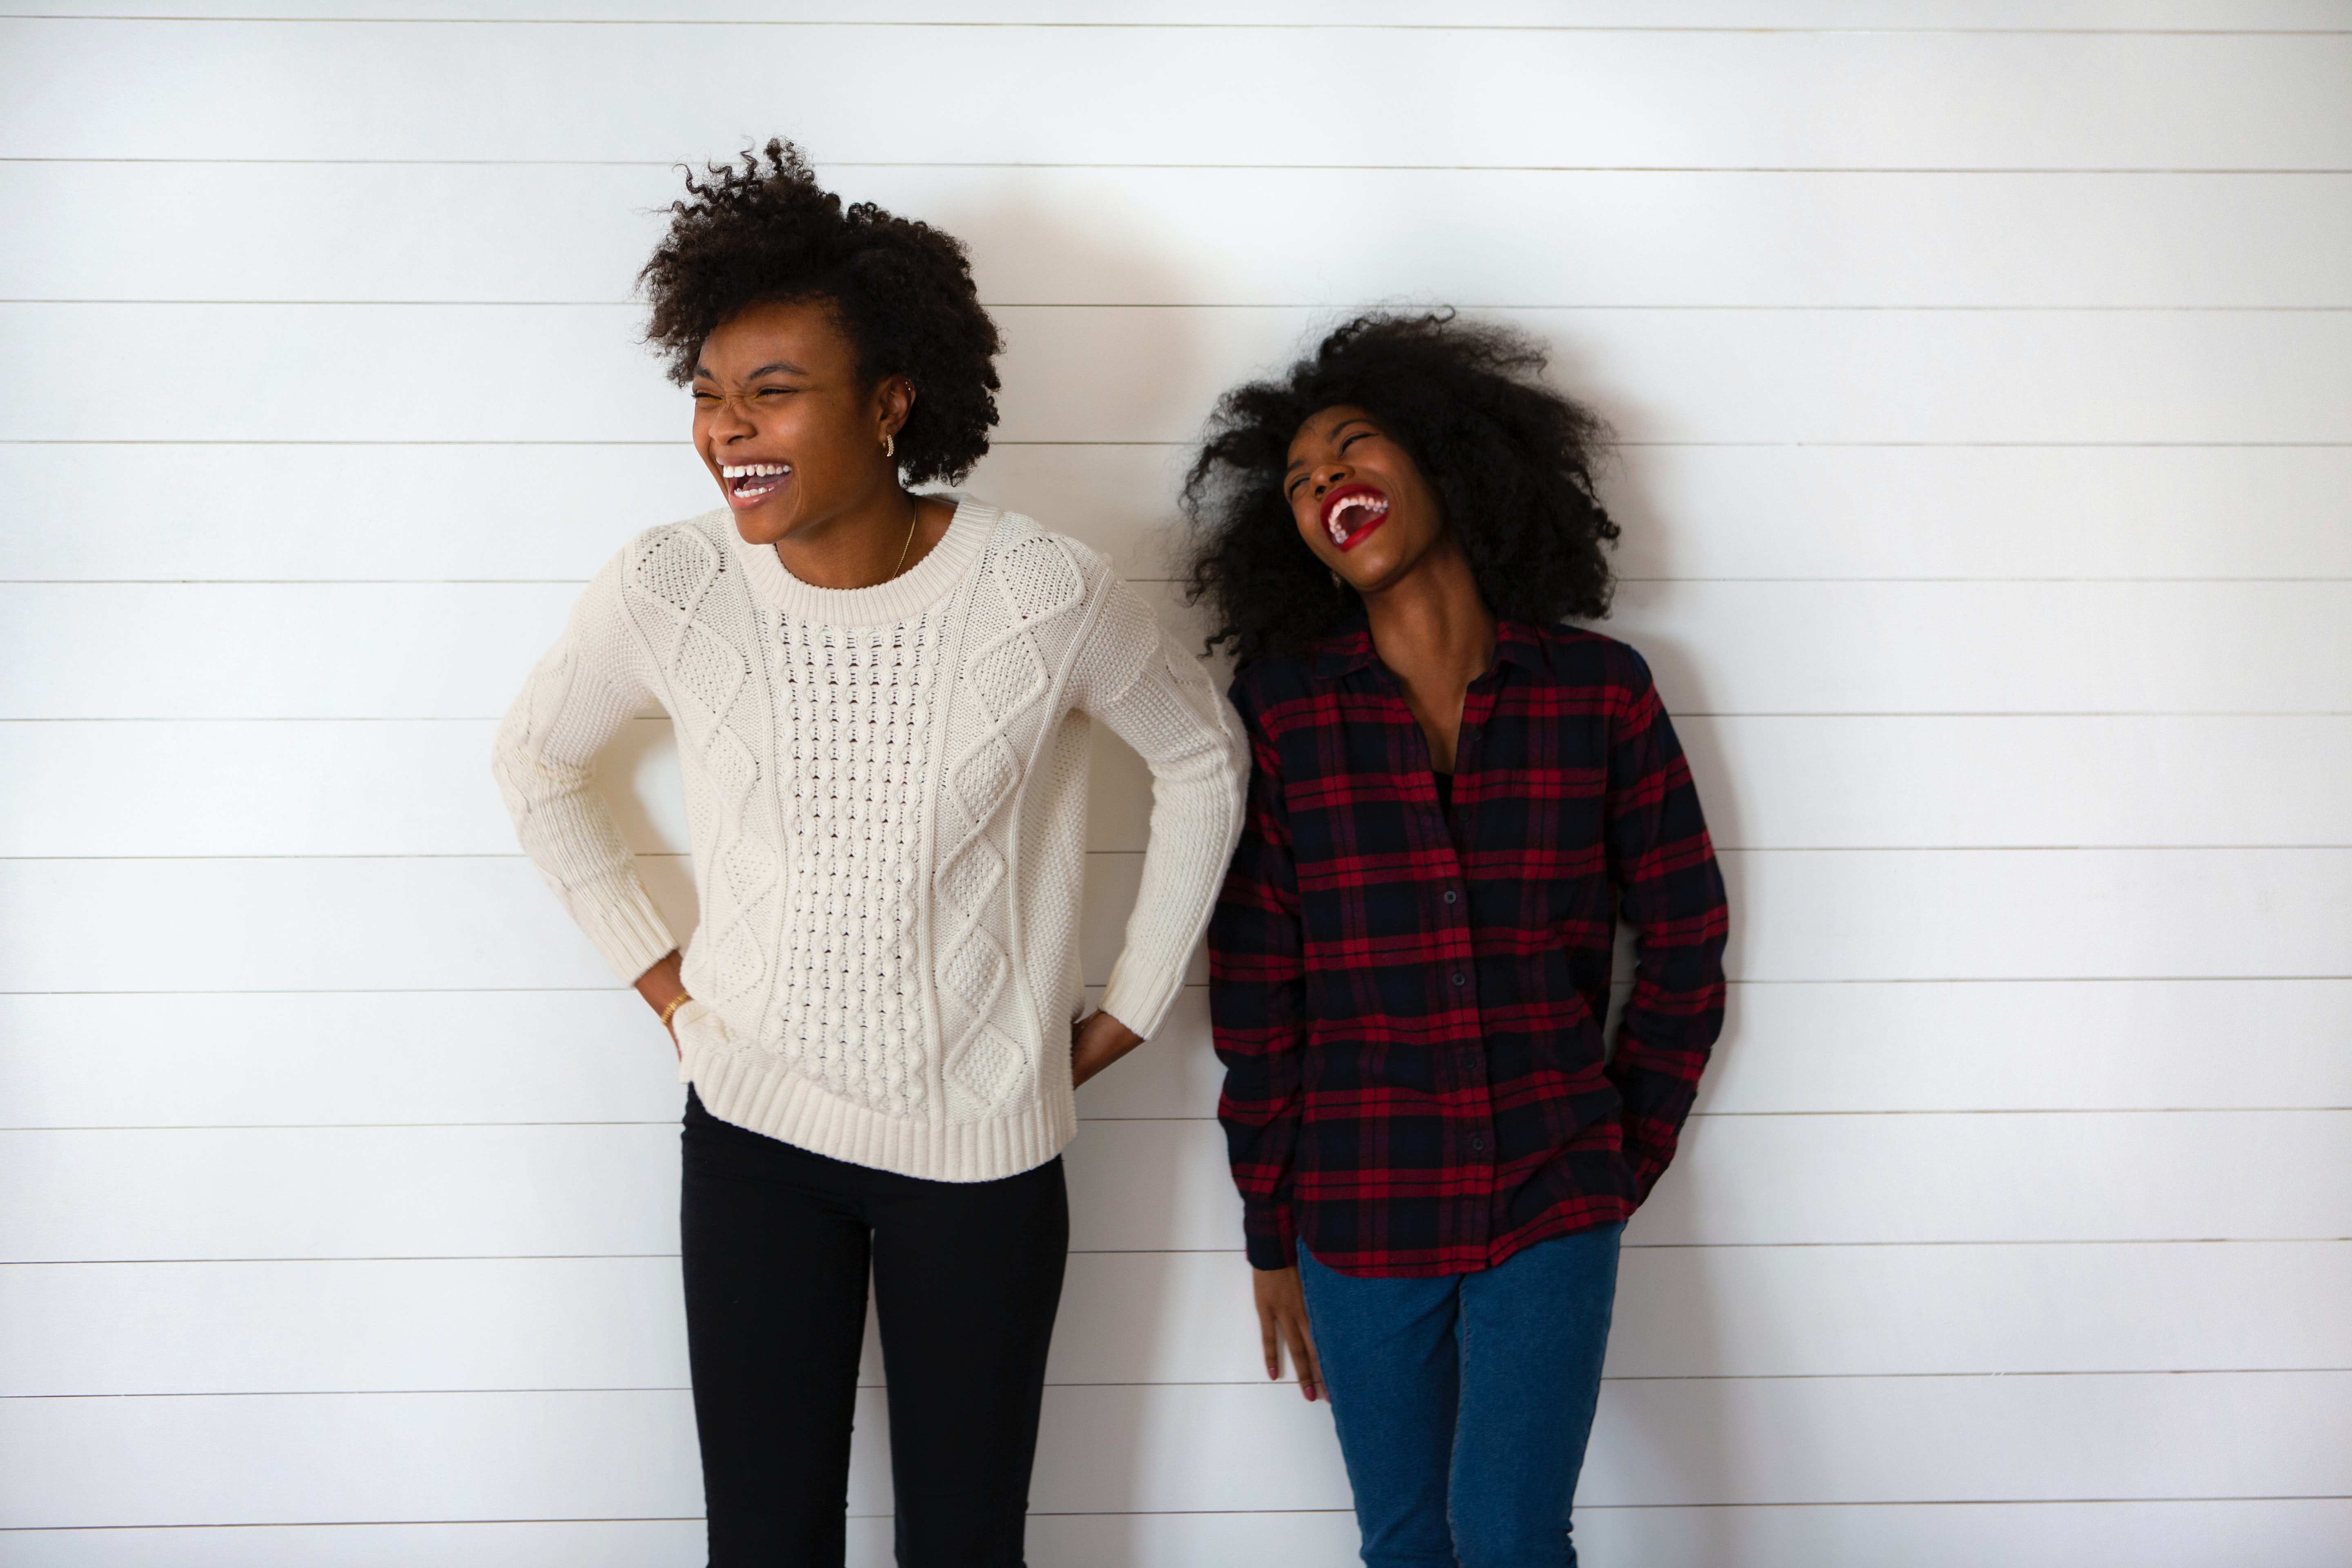 Two people leaning against a wall and laughing